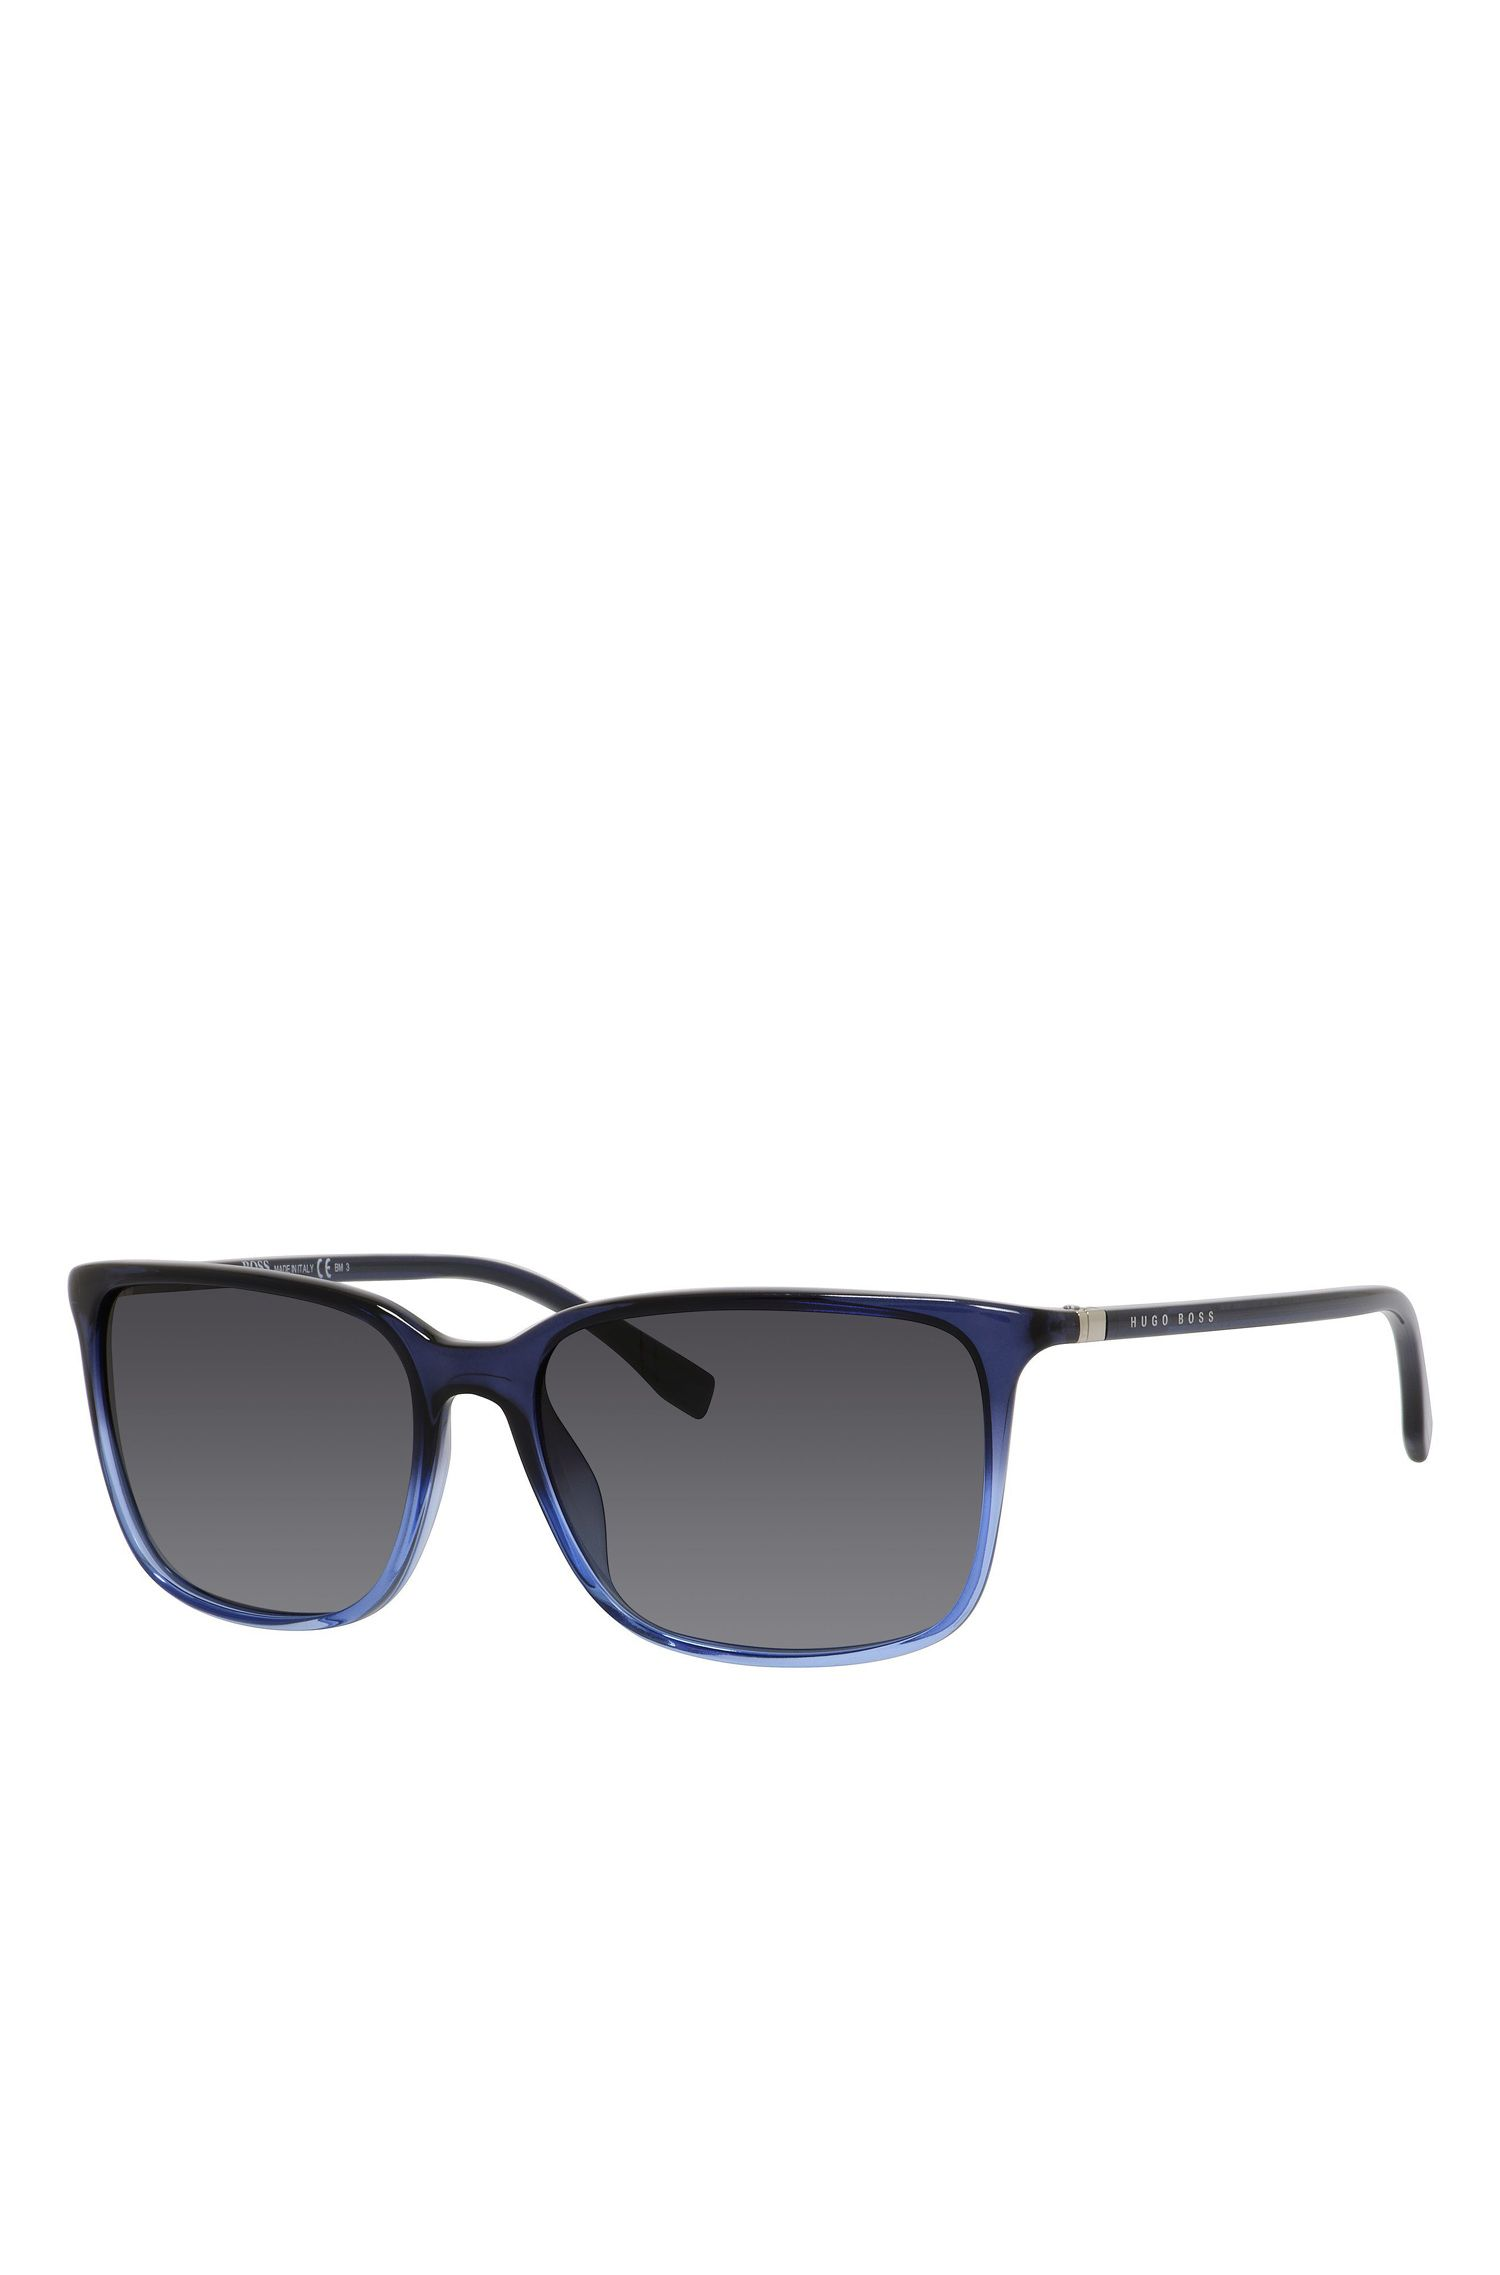 Gradient Lens Rectangular Sunglasses | BOSS 0666S, Assorted-Pre-Pack